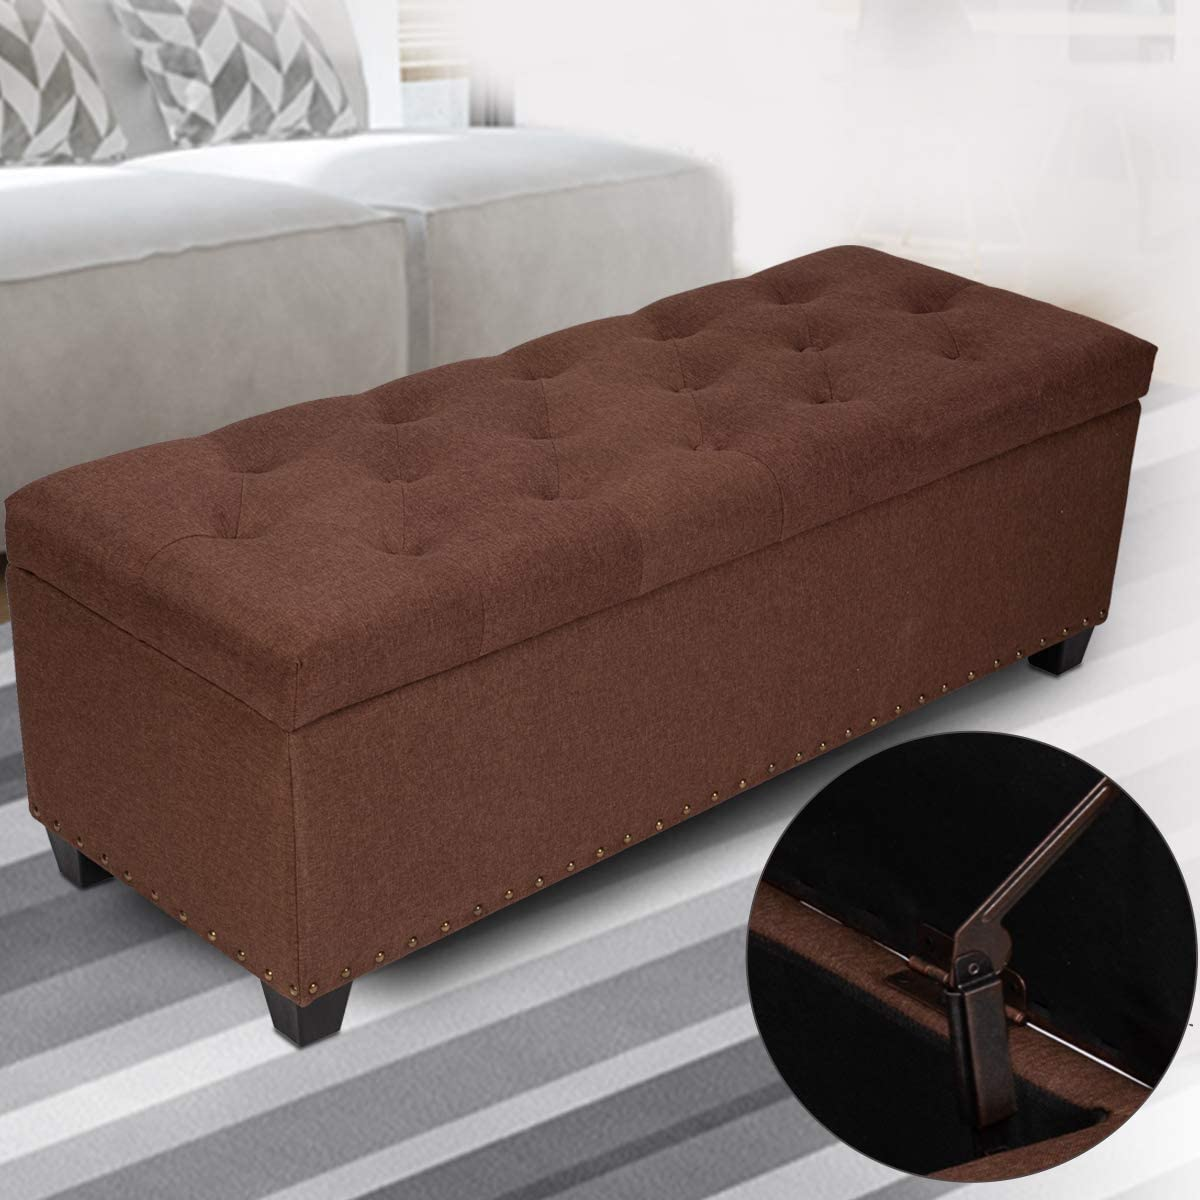 GOOD GRACIOUS Ottoman with Storage, 47.6 Large Storage Chest Foot Rest Stool Tufted Ottoman Holds up to 660lbs End of Bed Bench for Bedroom and Living Room, Brown